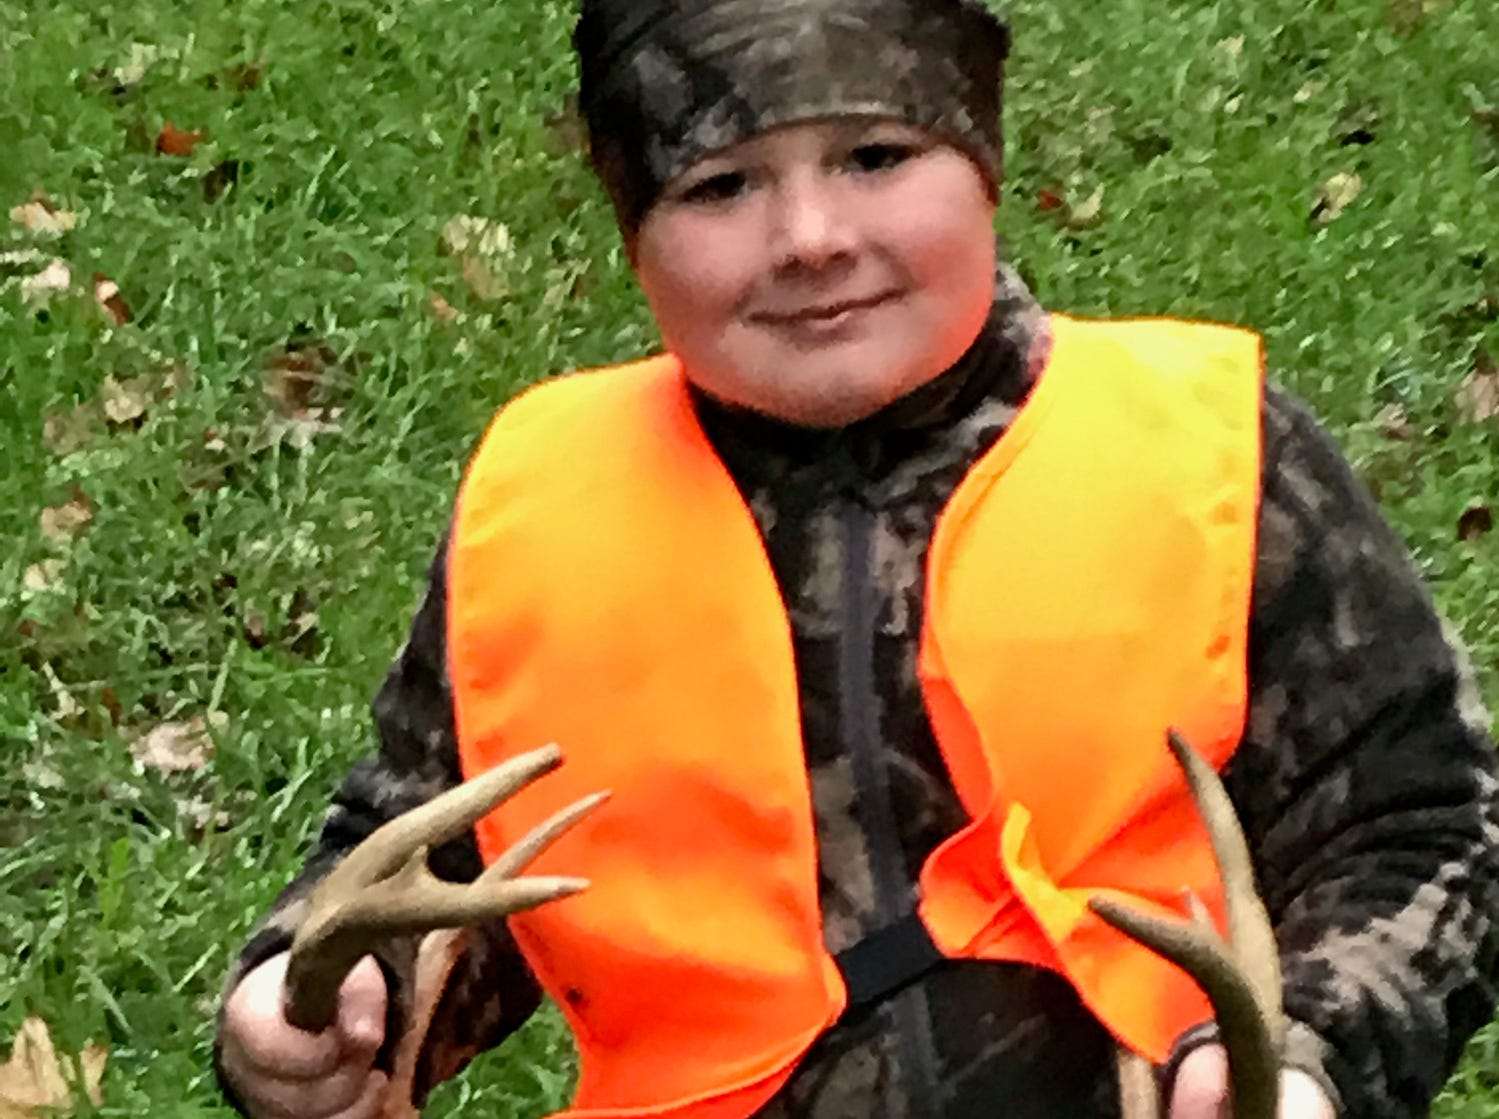 Remington Skeen, 8, of Grenada, harvested this deer in Rosebloom.